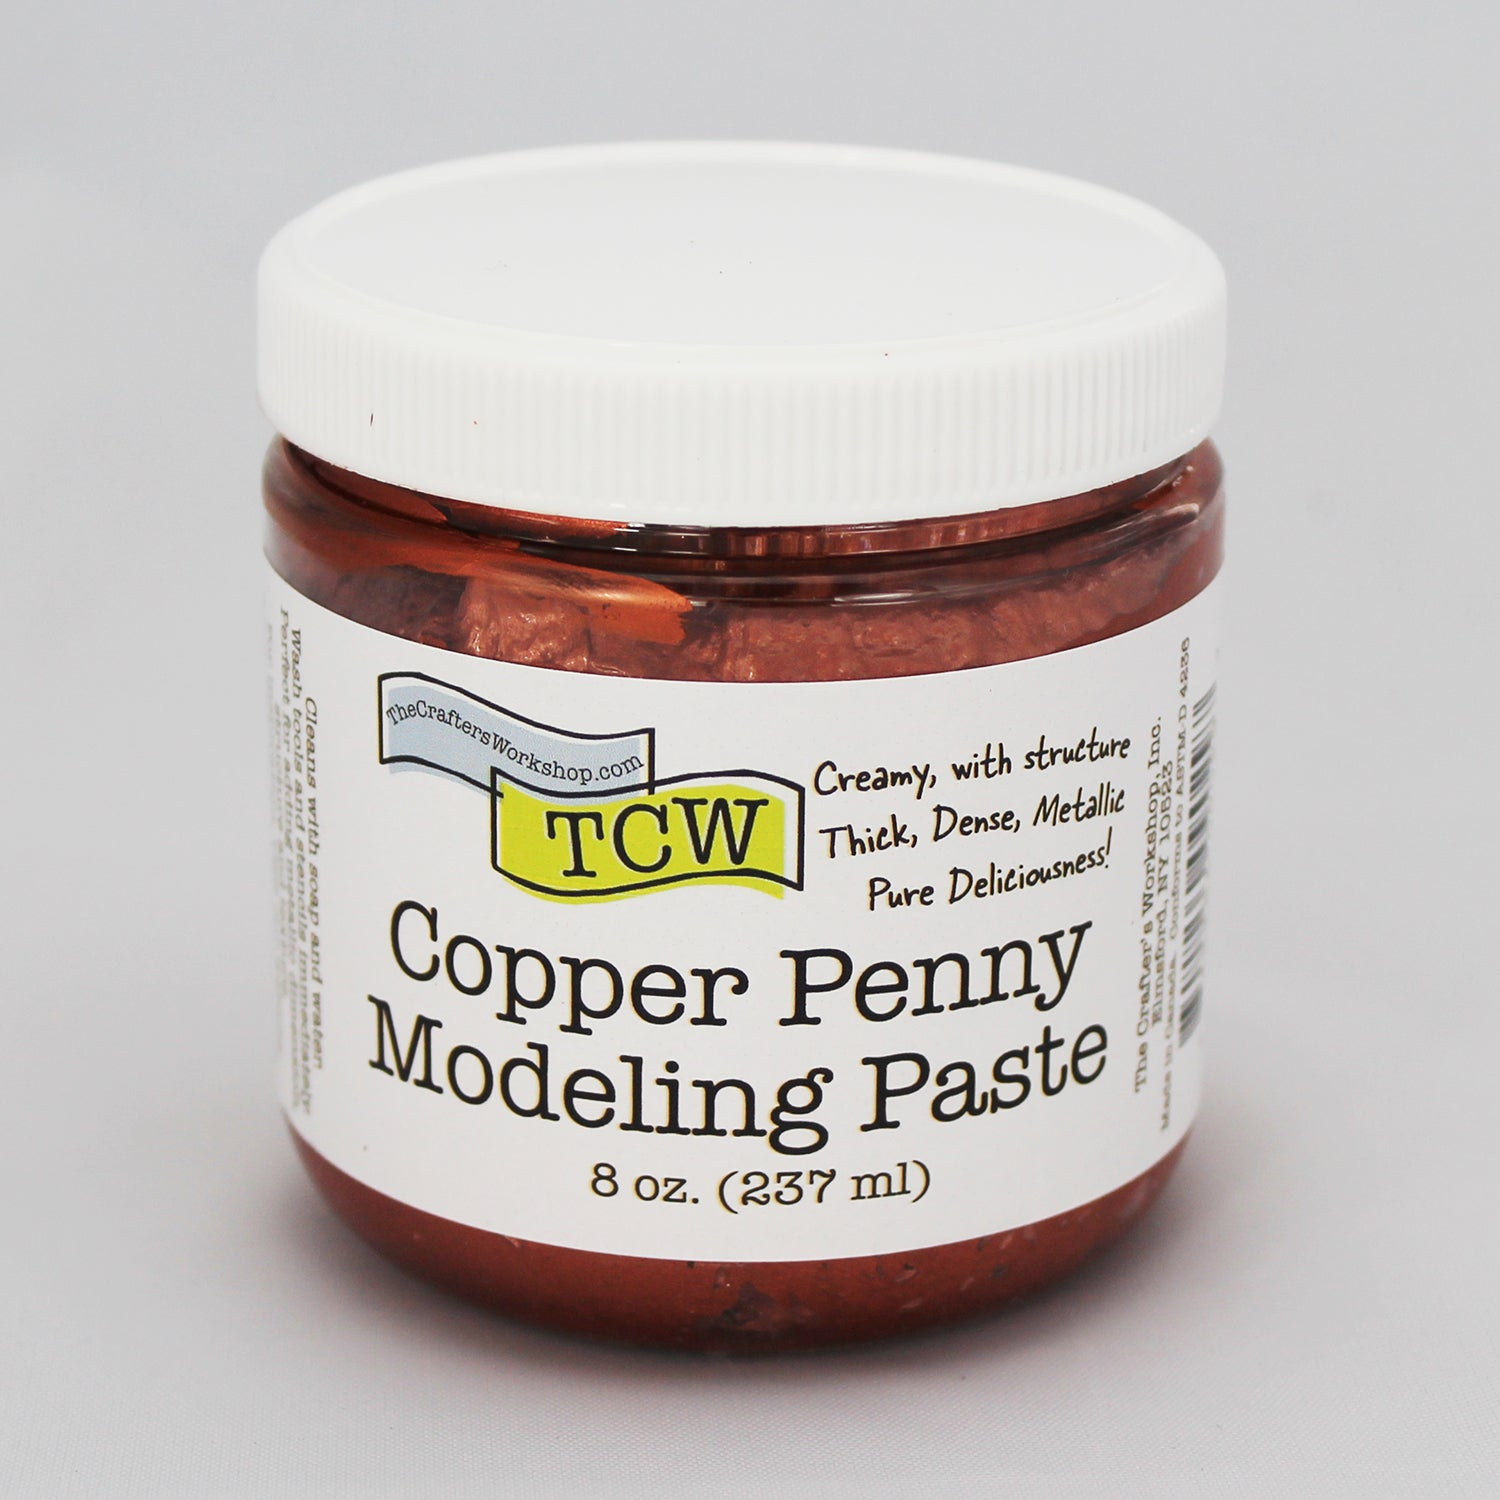 TCW Copper Penny Modelling Paste 8oz